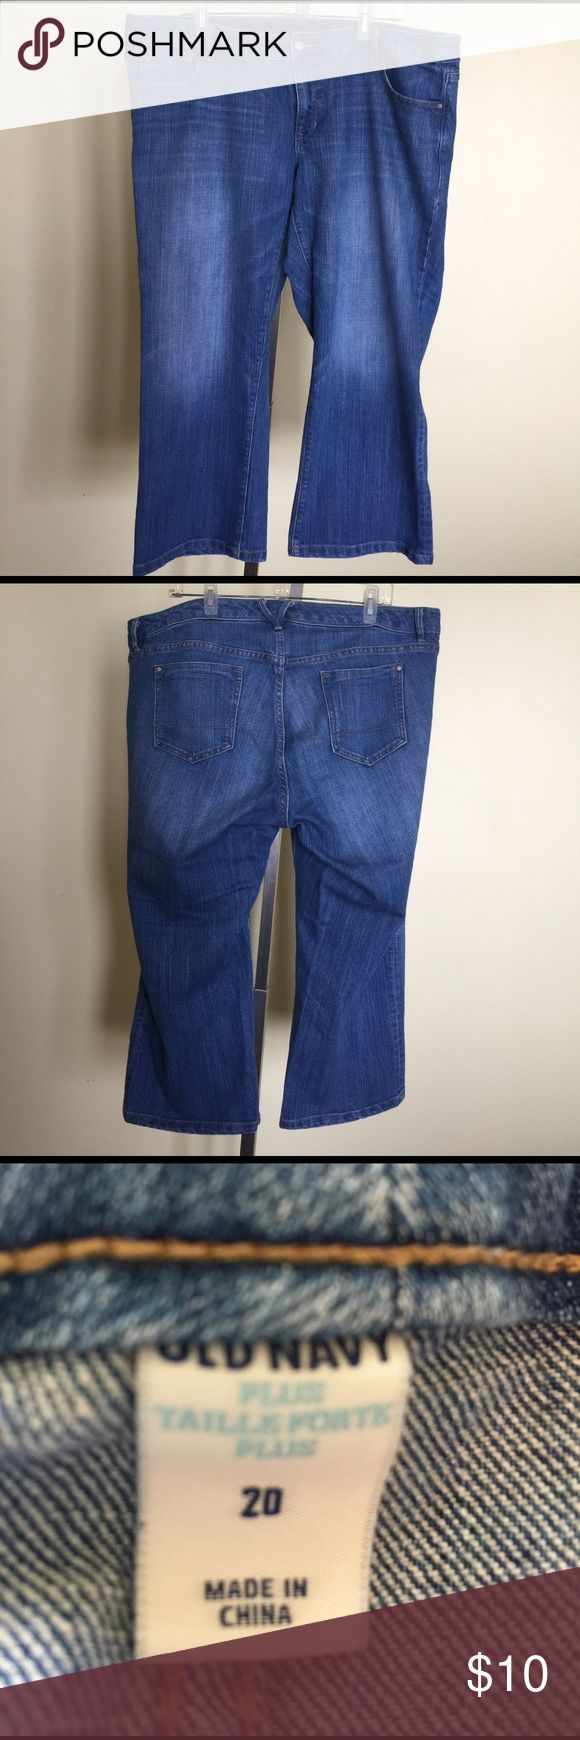 Women's Old Navy denim capris size 20. This is a pair of women's Old Navy denim capris size 20. They have been gently worn and come from a smoke free home. If you have any questions please let me know. Thanks! Old Navy Shorts Jean Shorts